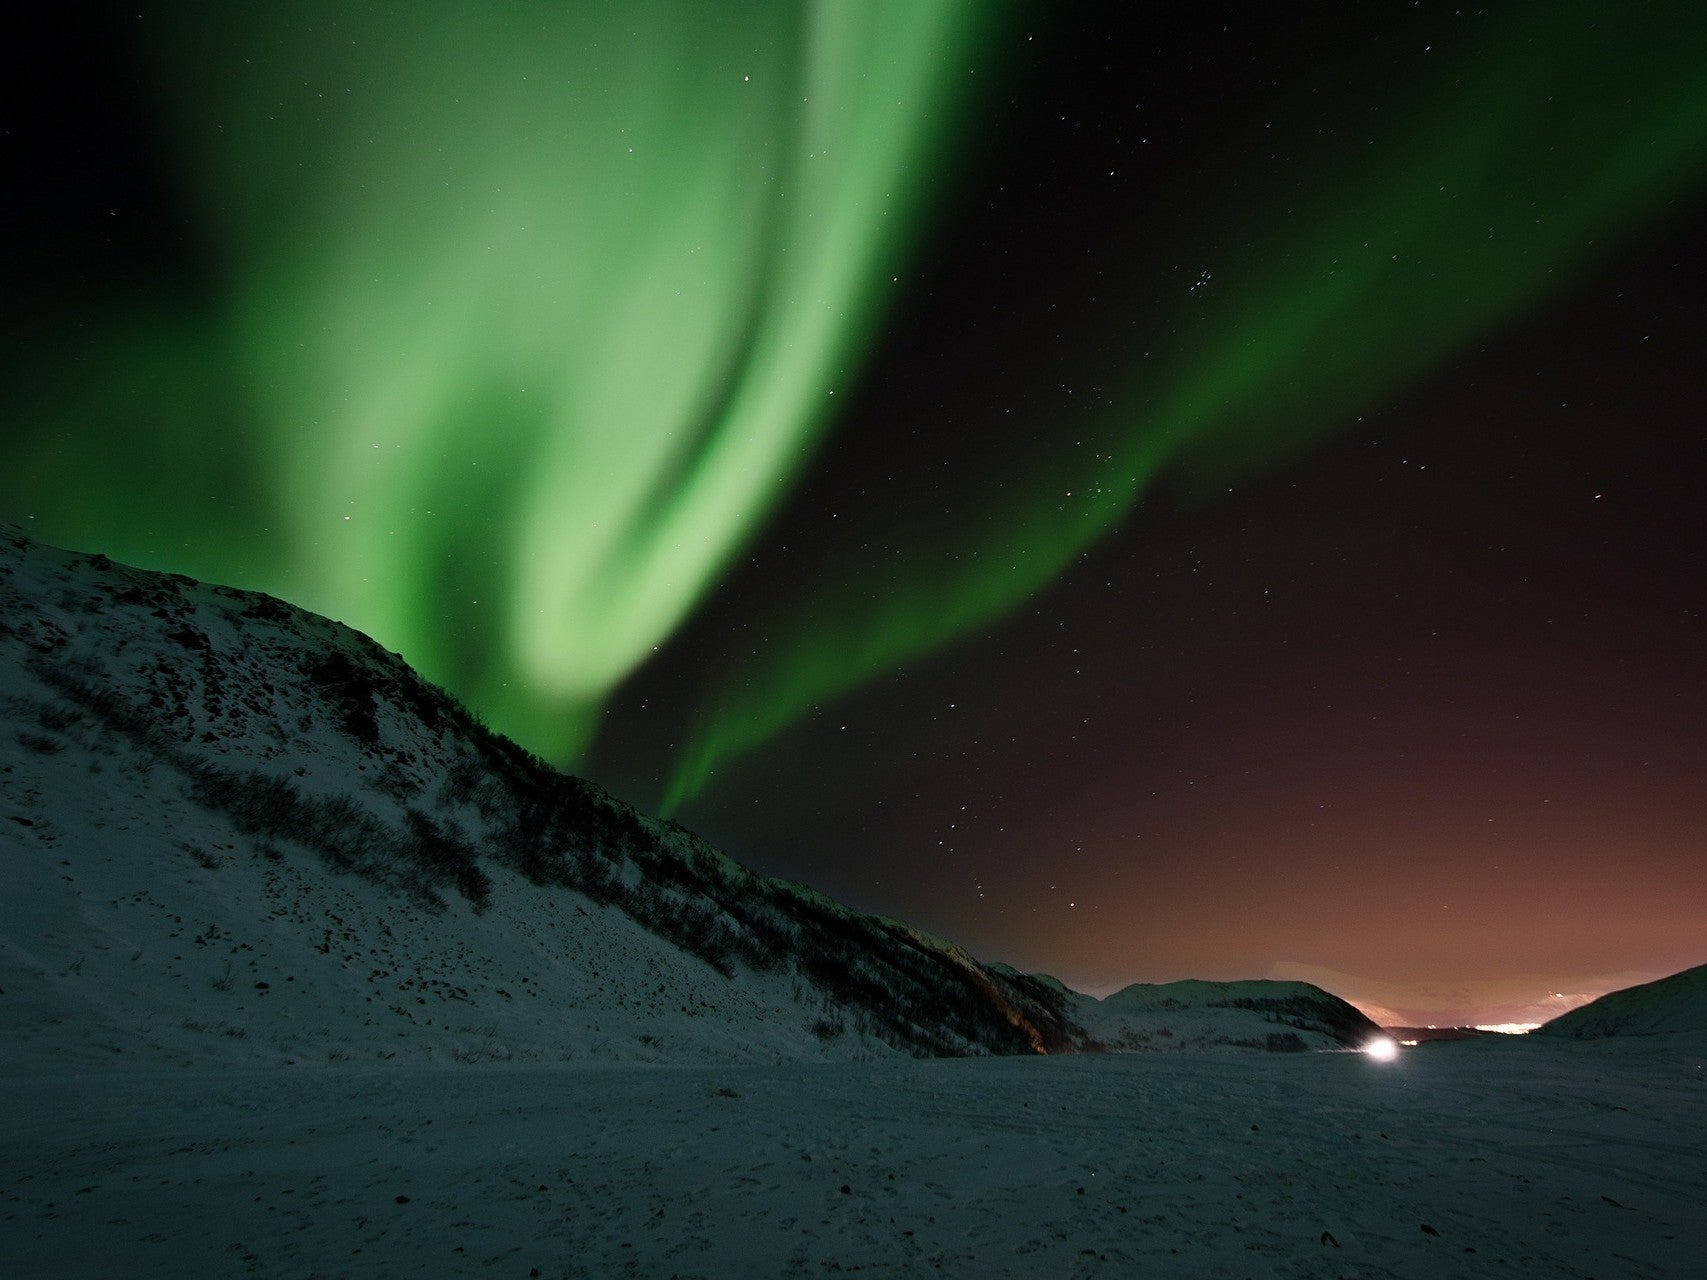 We finally know what sparks the Northern Lights | Popular Science